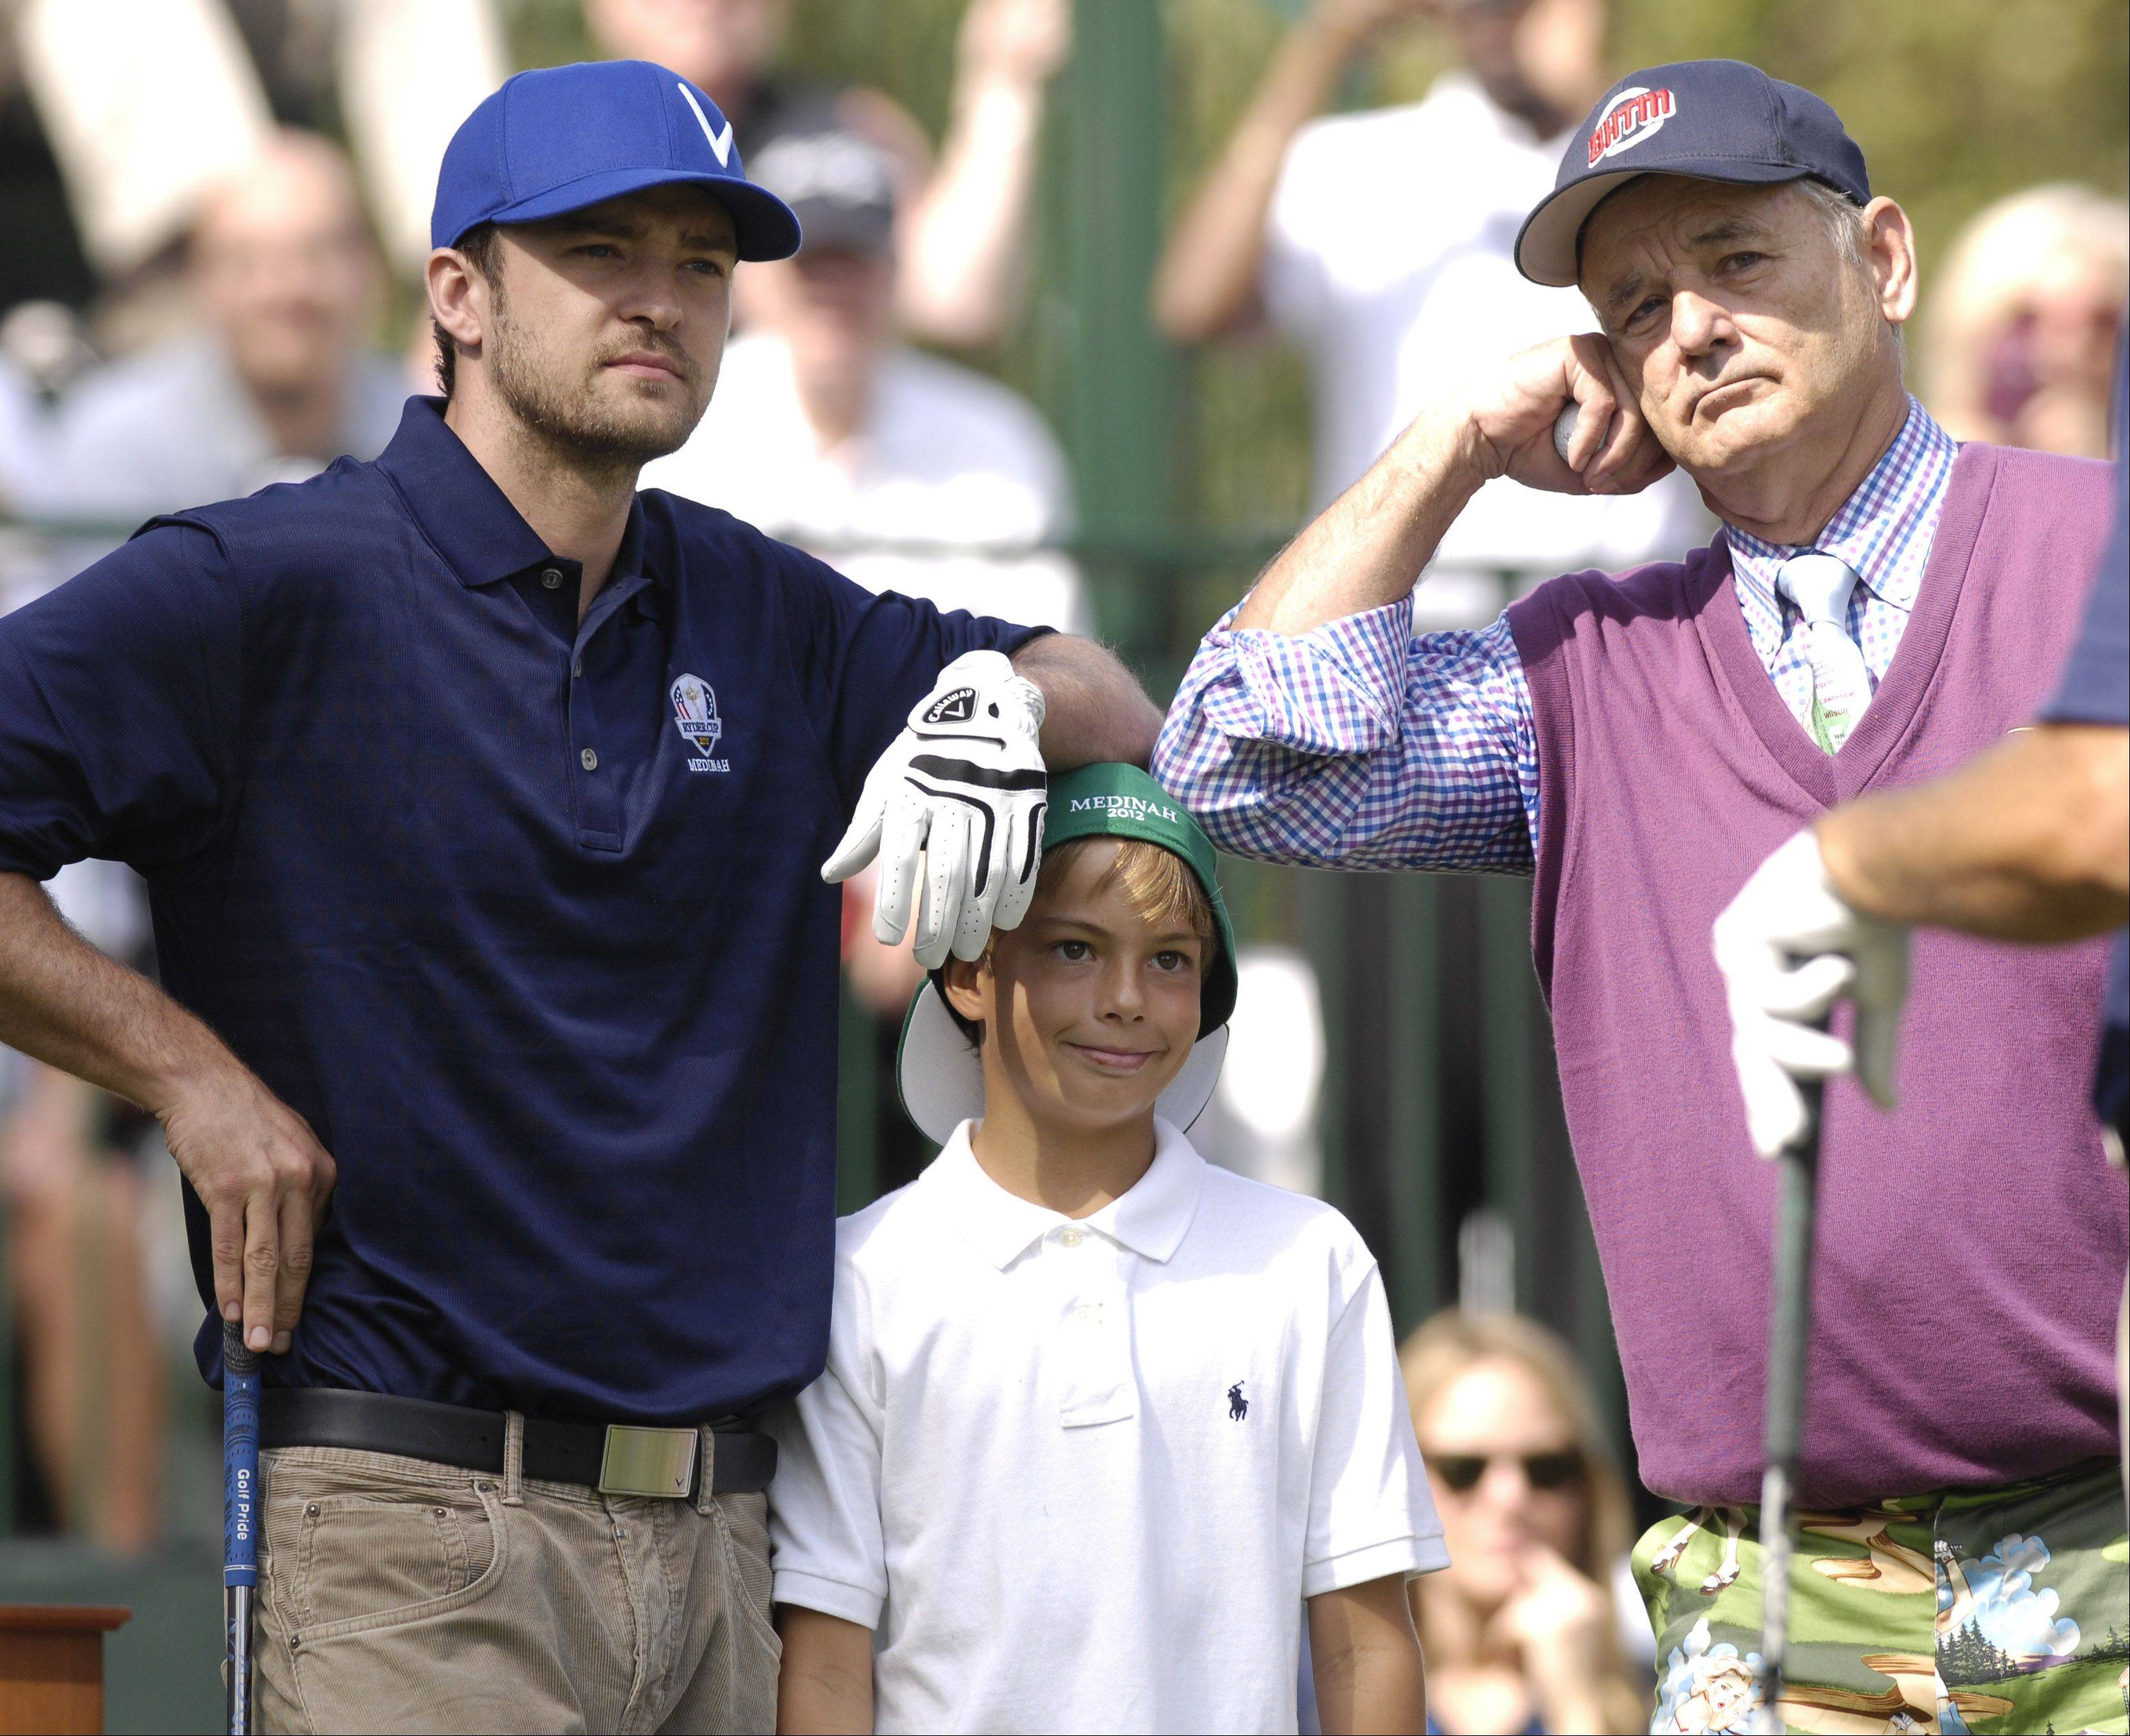 Justin Timberlake and Bill Murray have some fun with a young golf fan before teeing off.